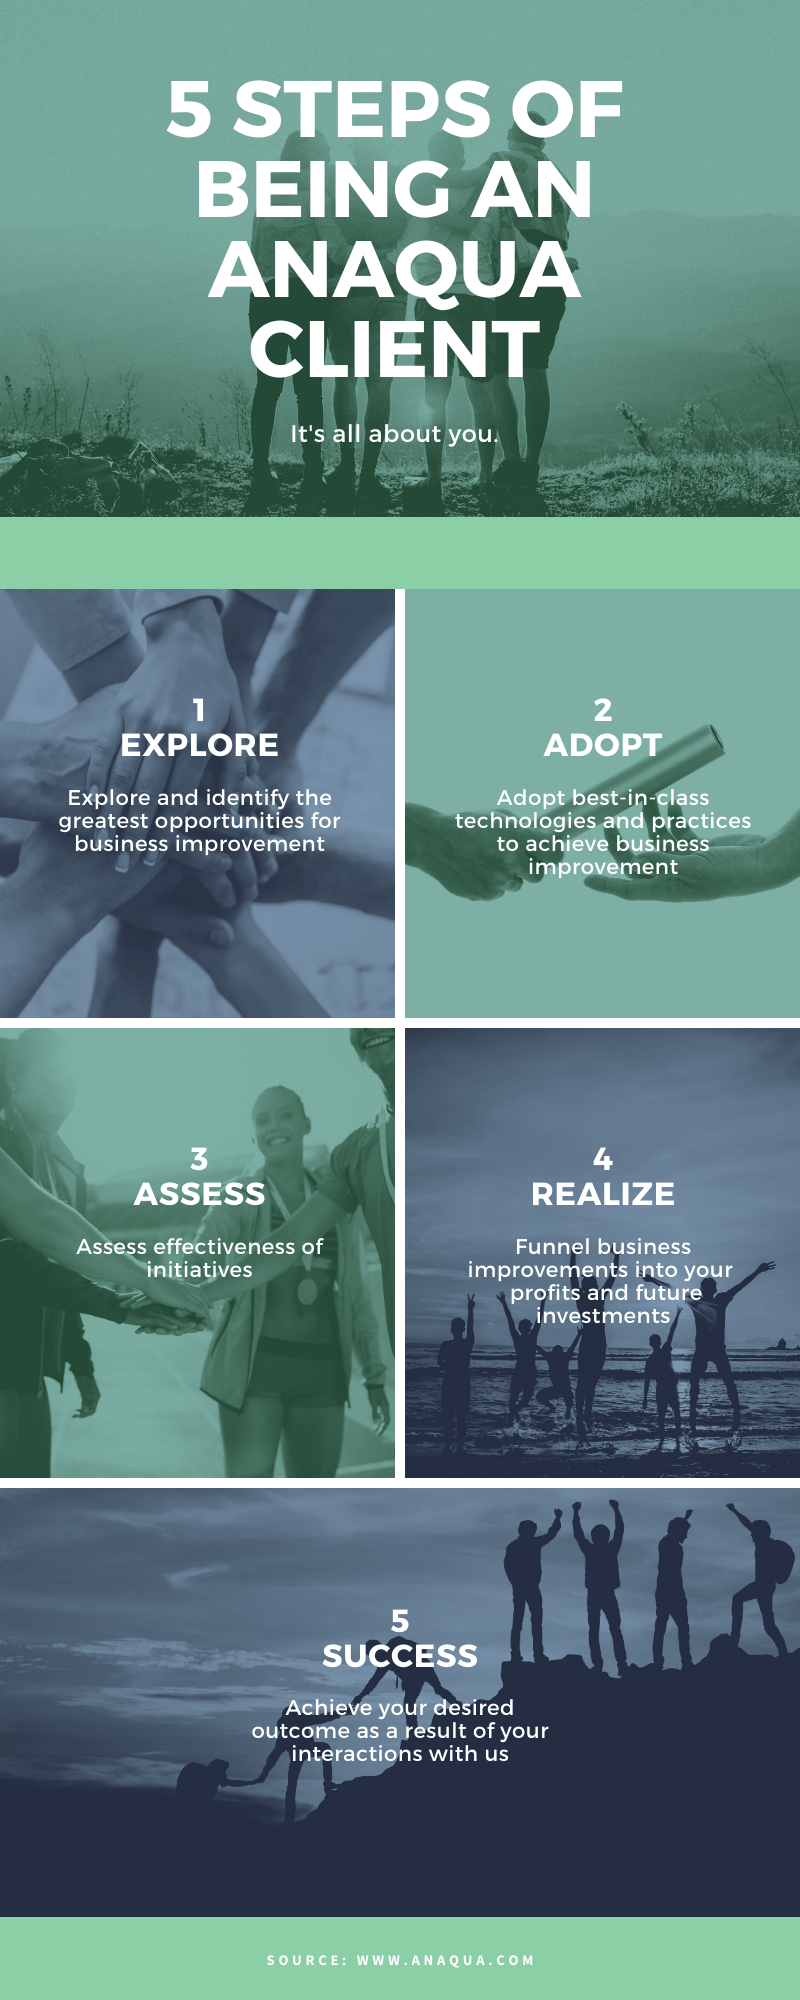 5 Steps of Being an Anaqua Client - Infographic